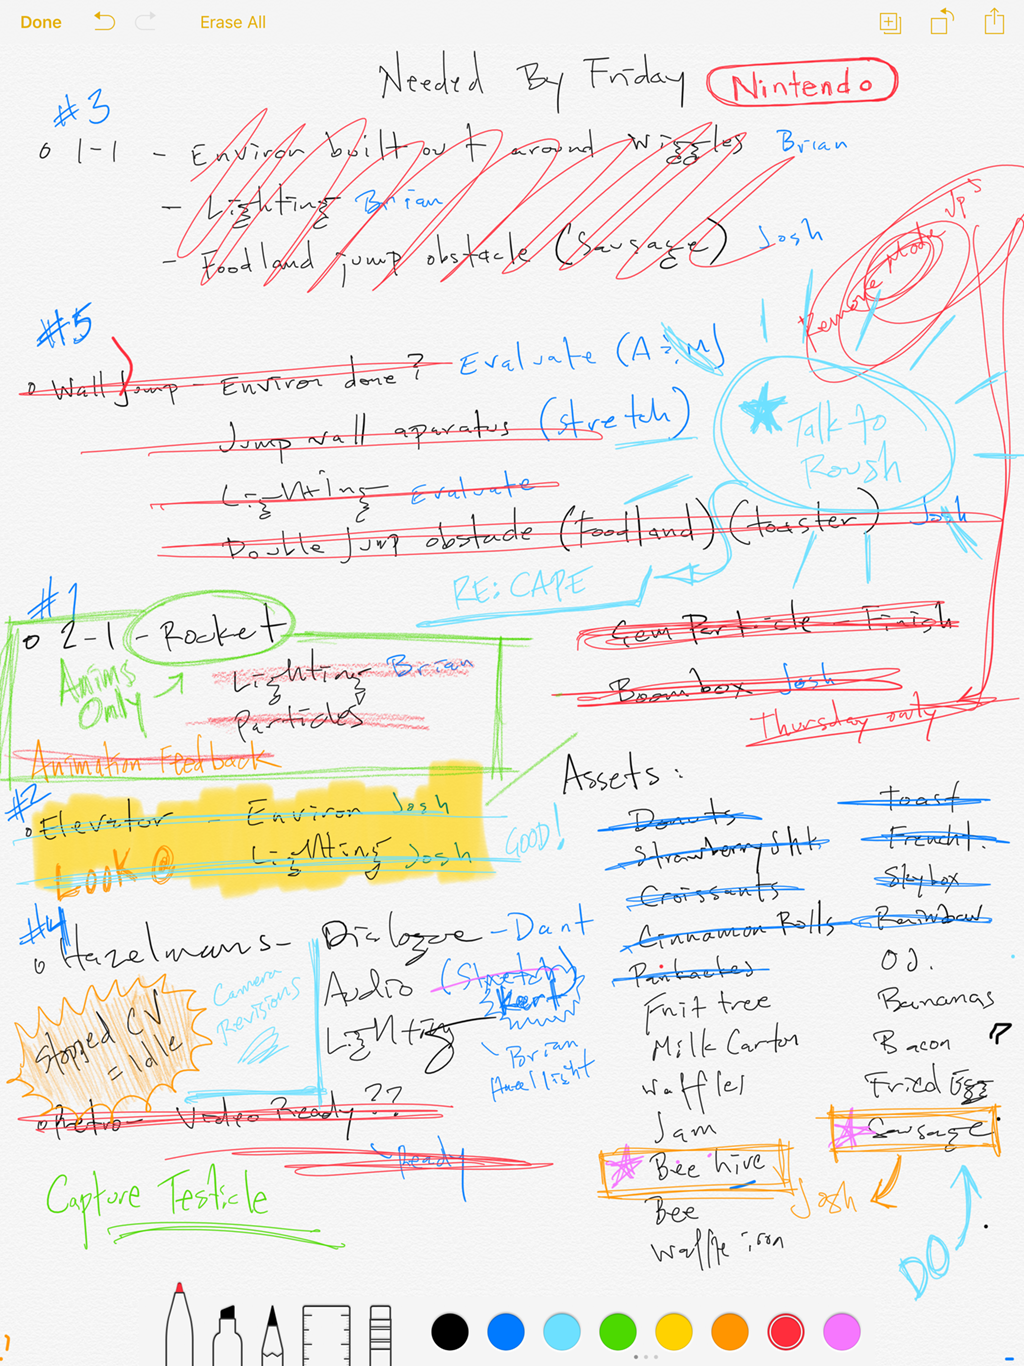 Runner3 - Daily Notes - 20170208.PNG